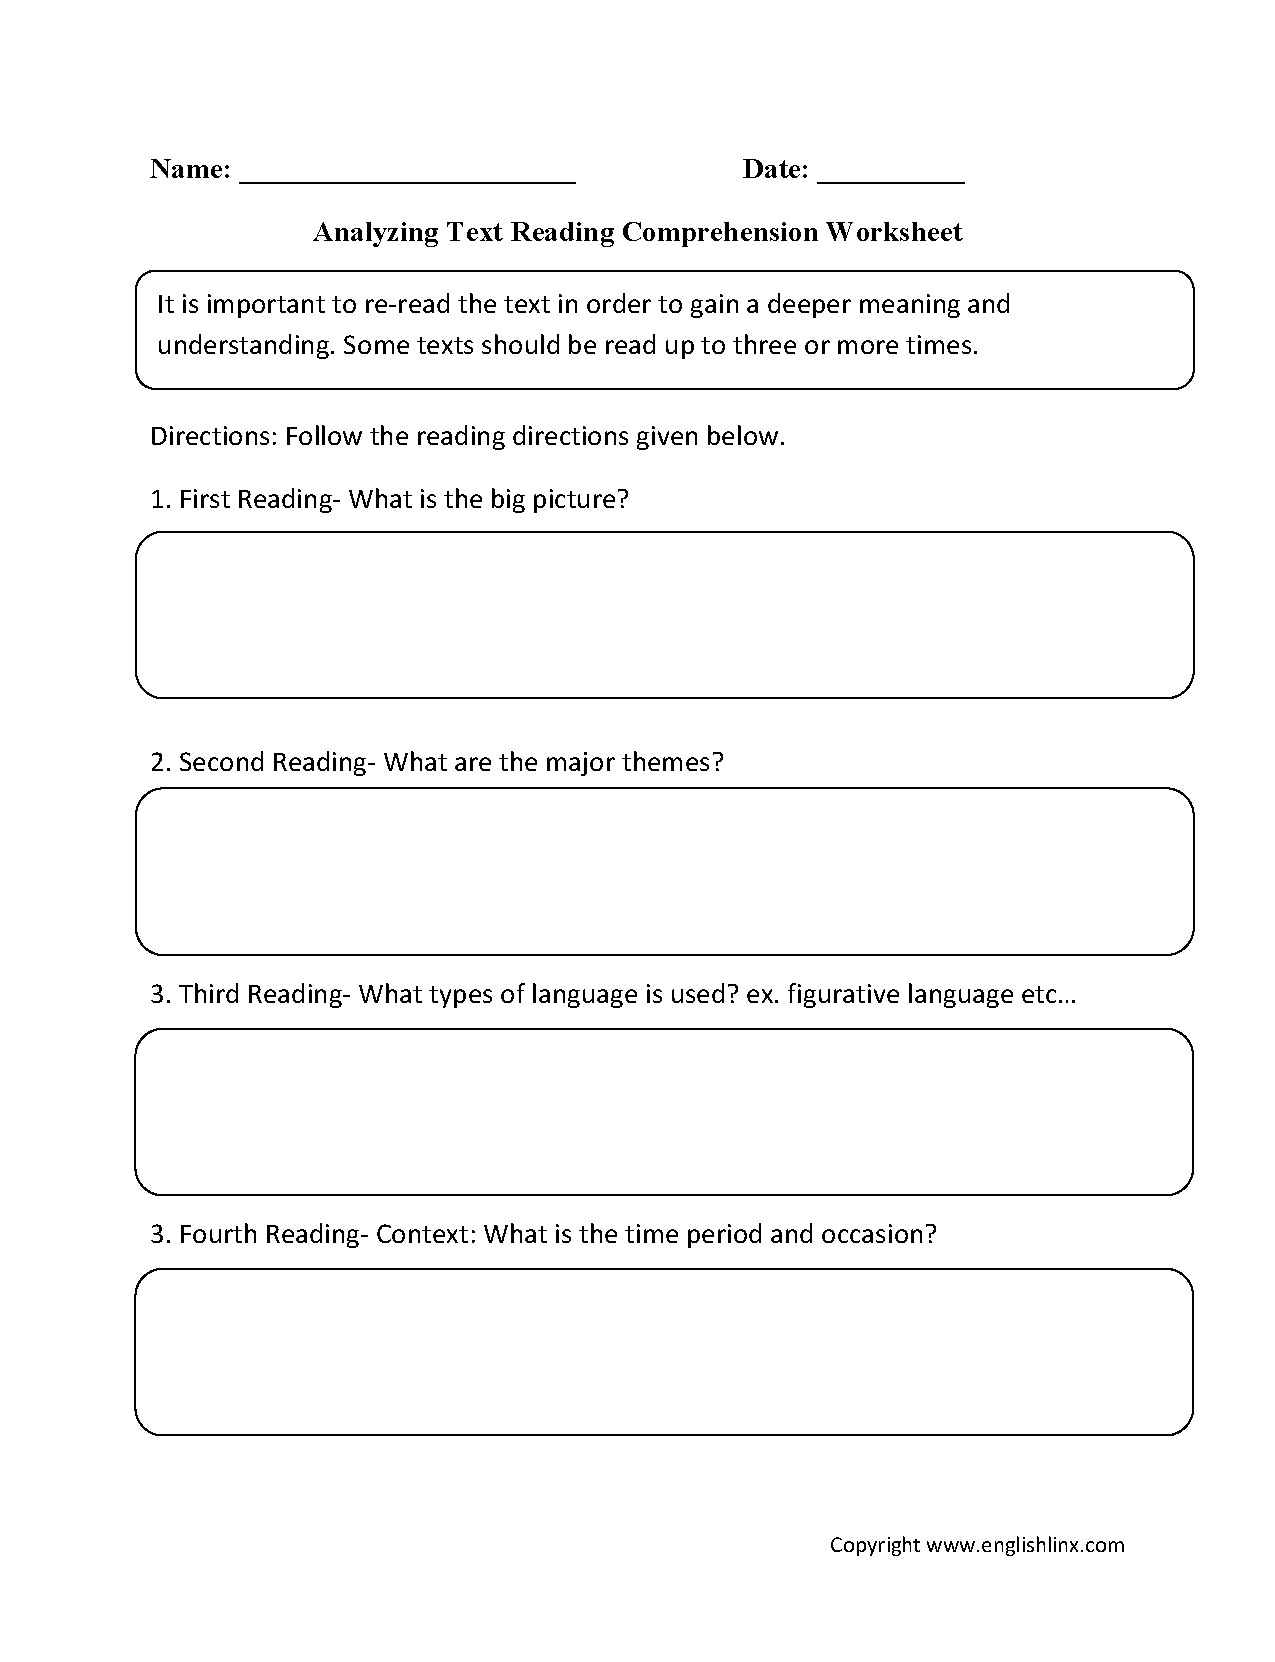 Worksheet Reading Comprehension Sheets englishlinx com reading comprehension worksheets worksheets